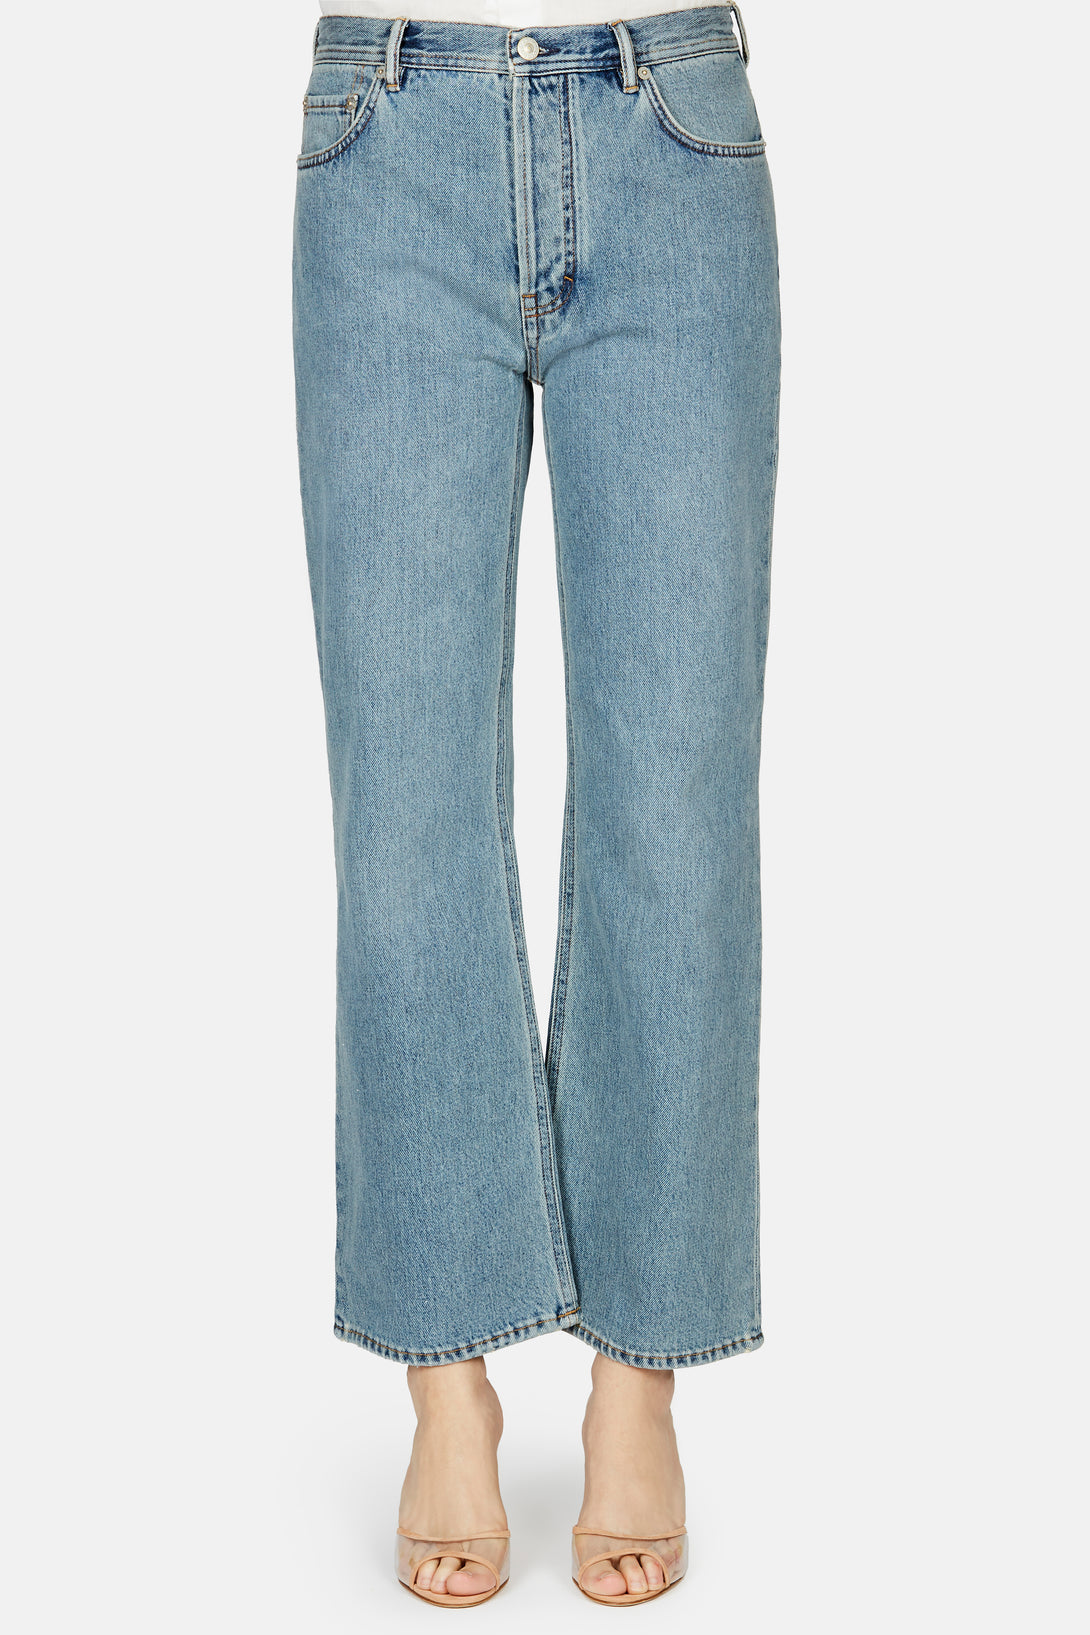 Taguhy Straight Denim Jean - Blue Vintage